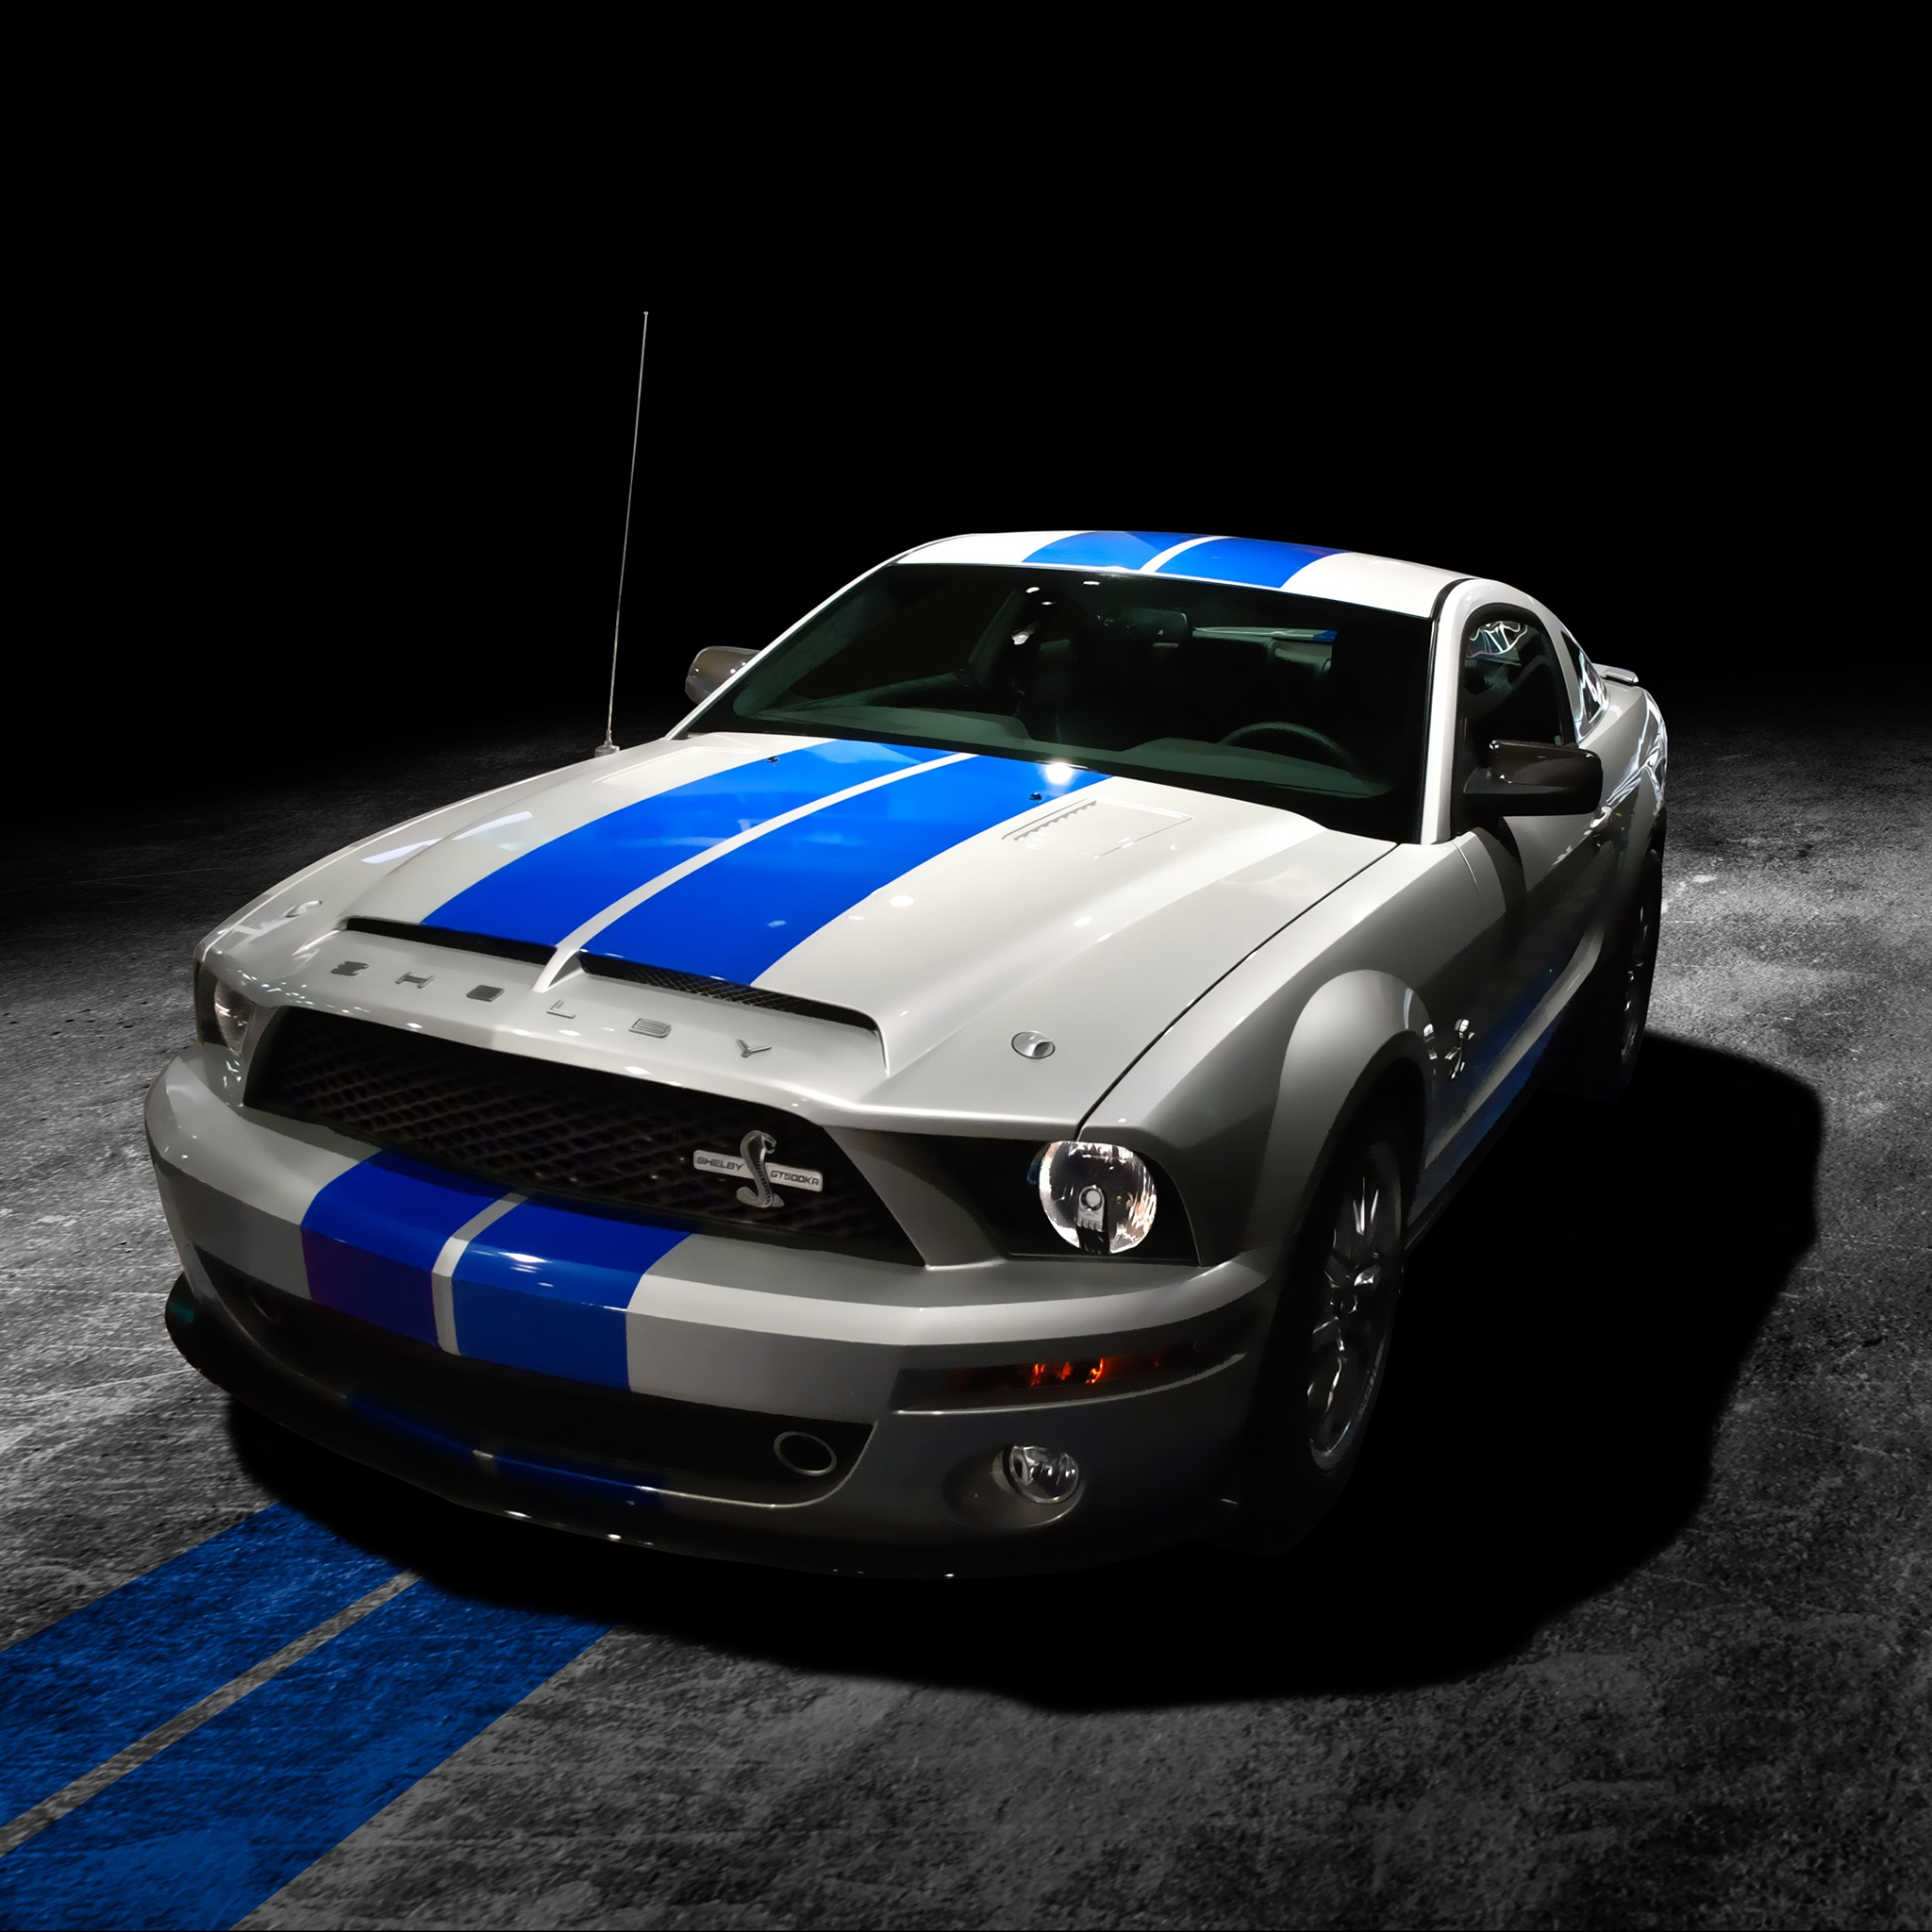 mustang shelby gt500kr - ipad wallpaper for iphone x, 8, 7, 6 - free